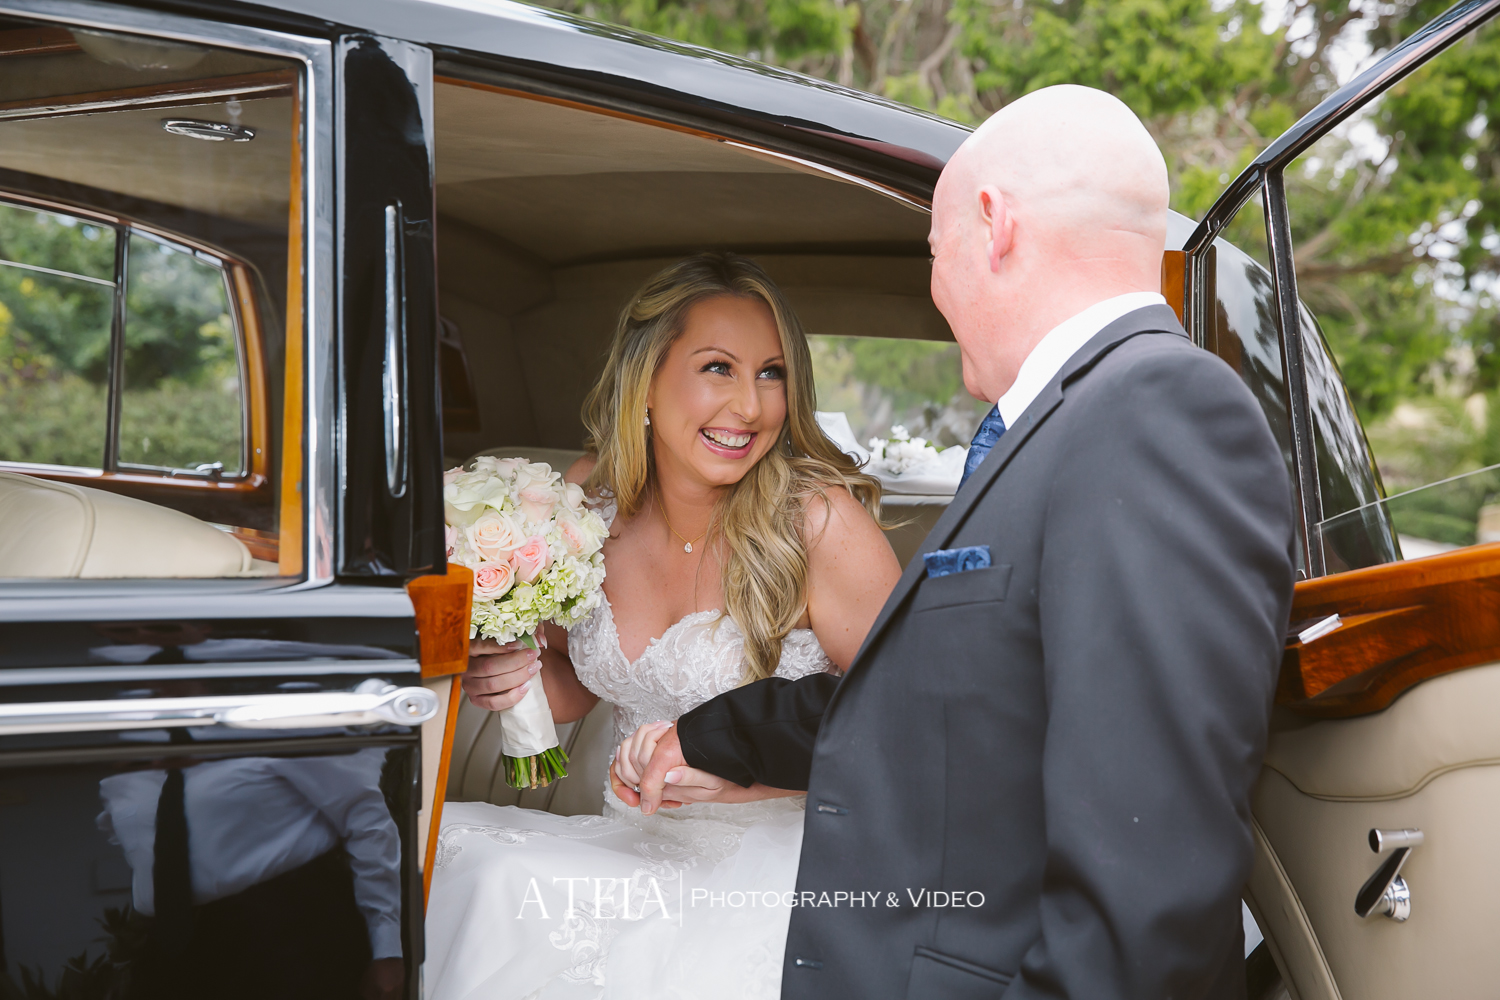 , Marnong Estate Wedding Photography Melbourne by ATEIA Photography & Video